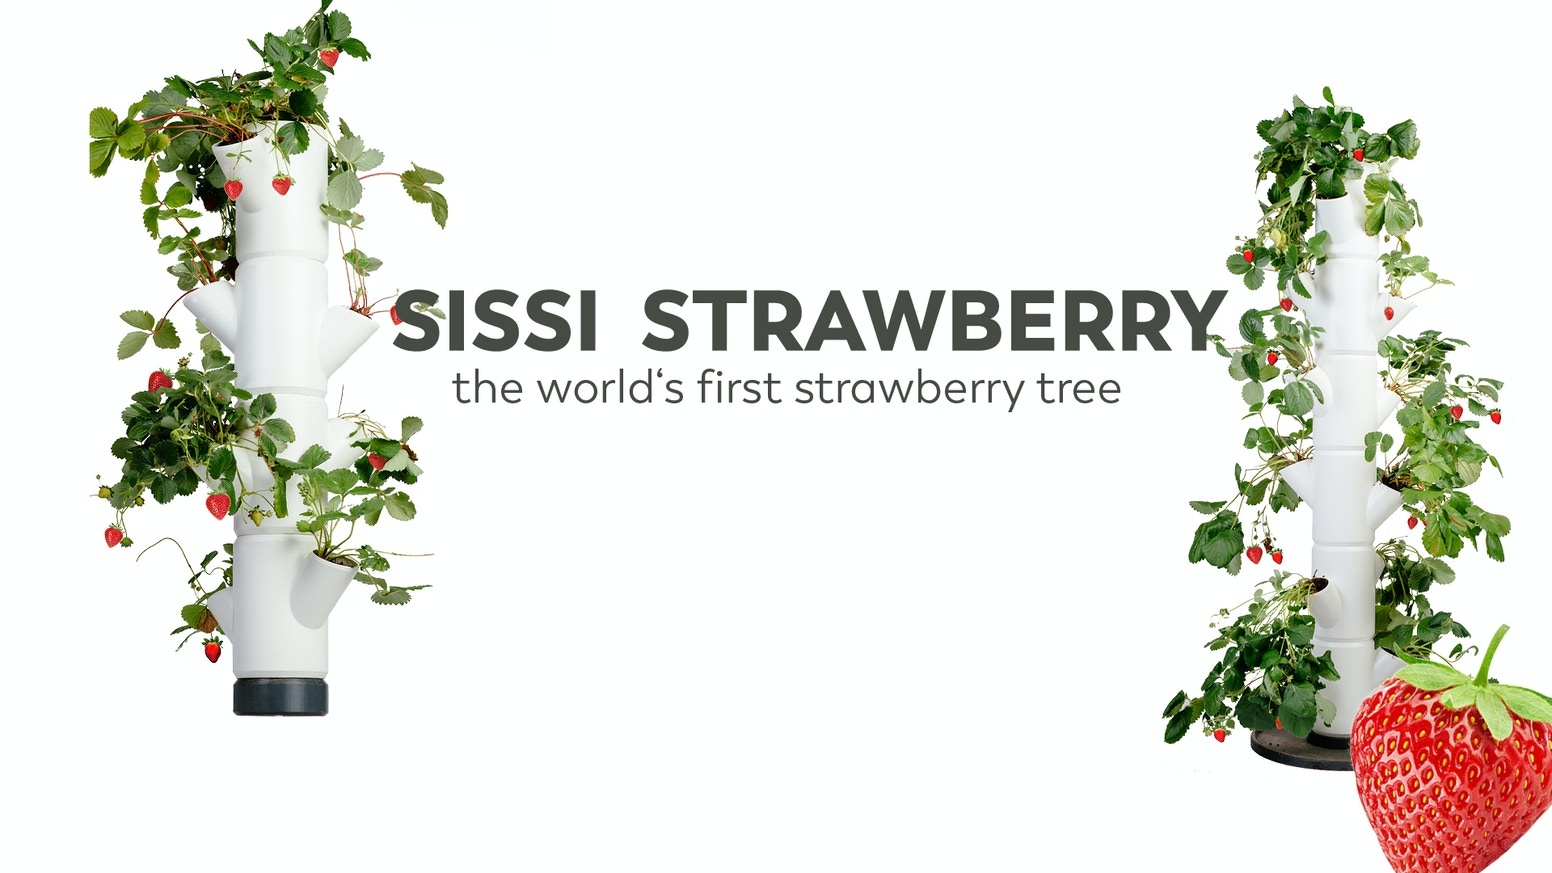 The easiest and most stylish way to grow your very own strawberries on your balcony or terrace.